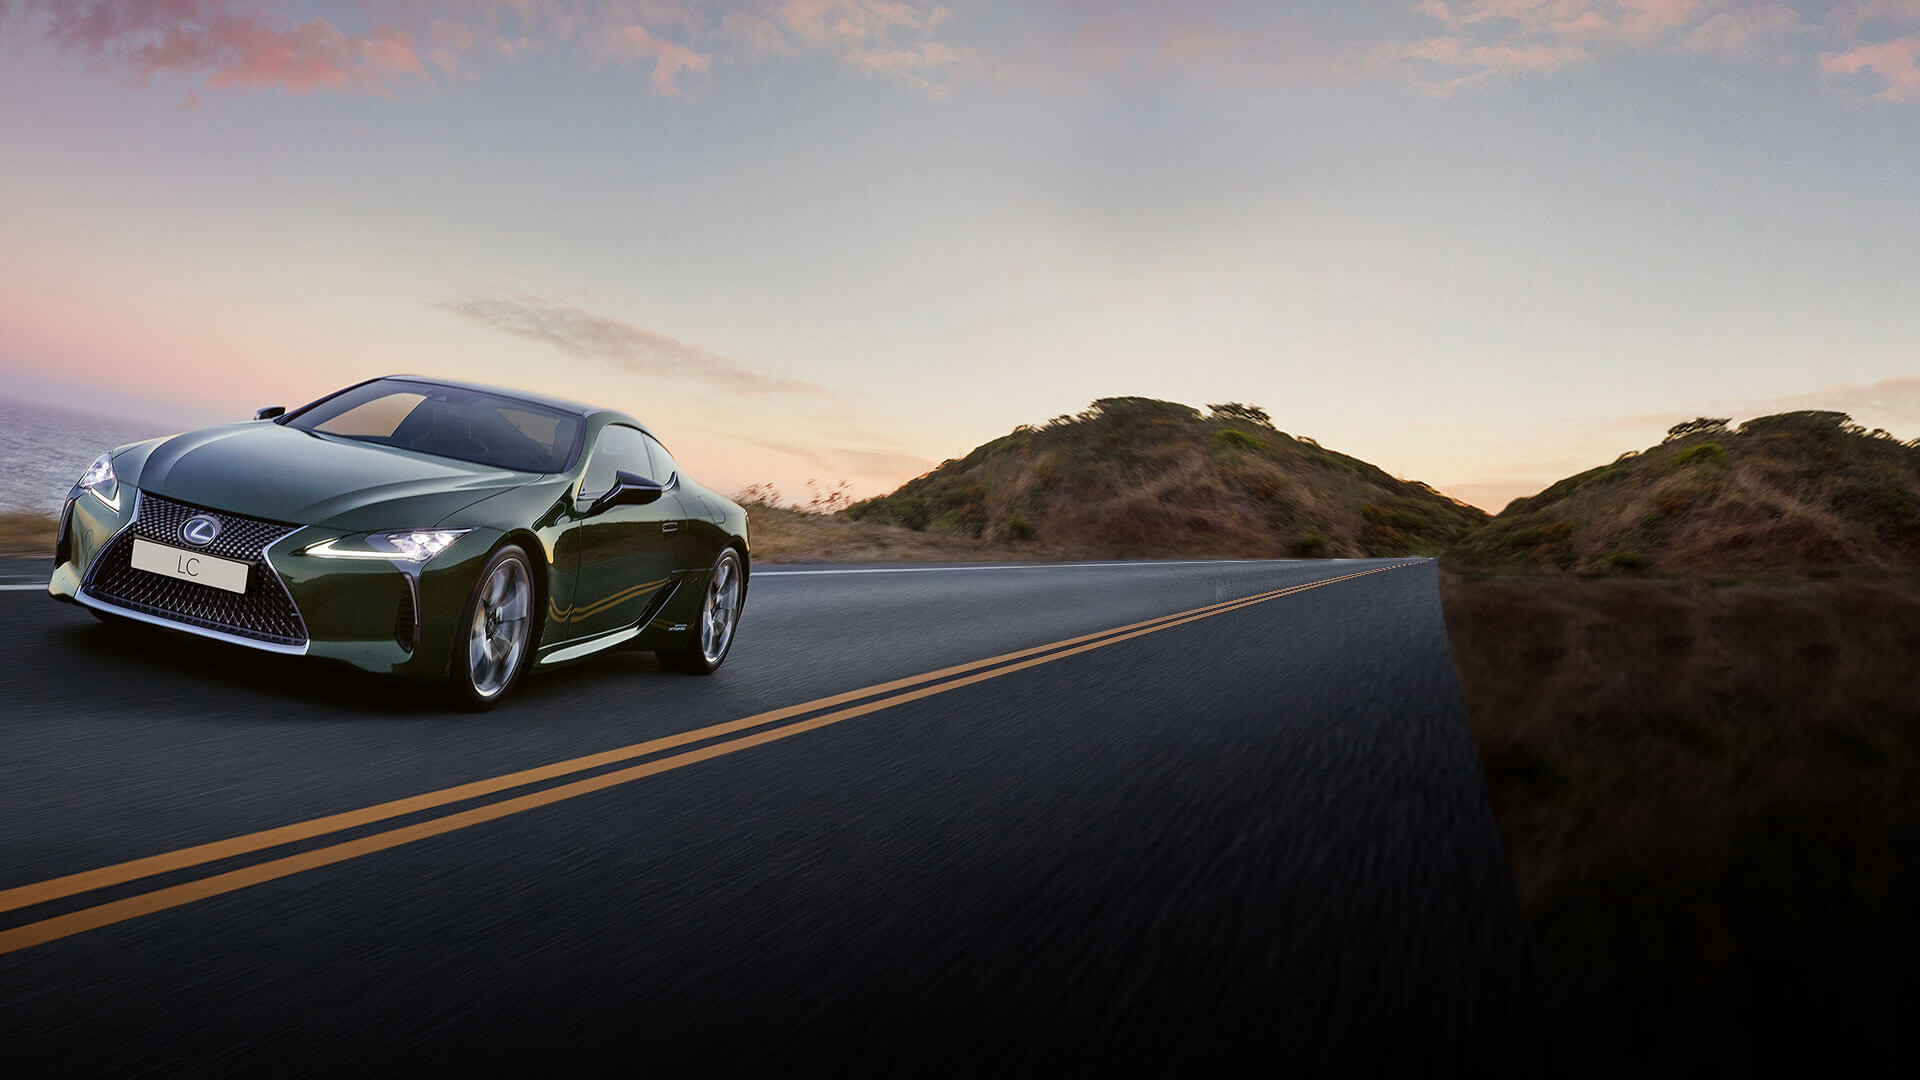 2020 lexus lc limited edition key features